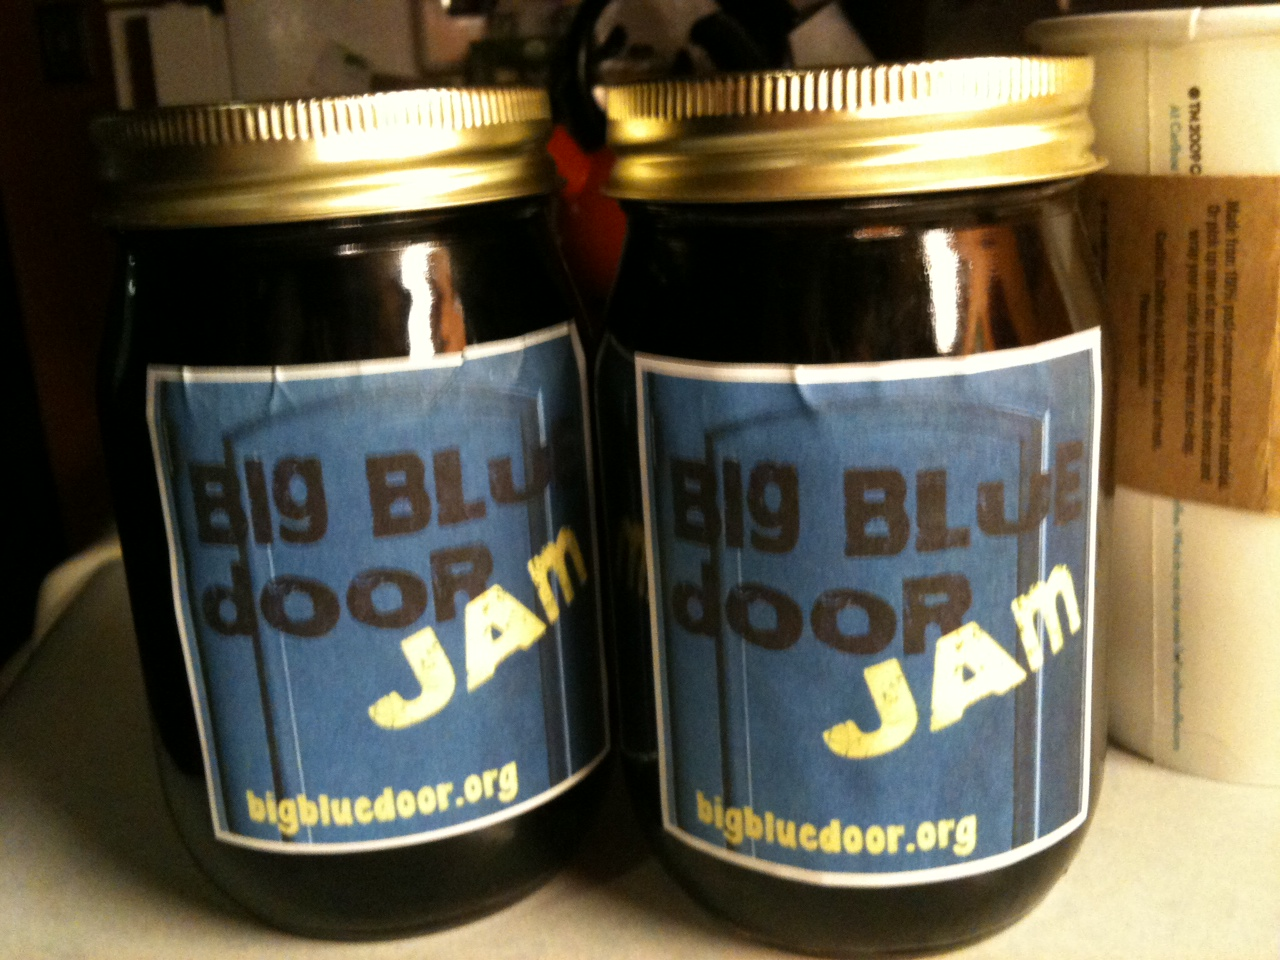 One of these two jars of Big Blue Door Jam jam will be given to one of our storytellers Thursday night at our Big Blue Door Jam at The Bridge ... & Our Big Blue Door Jam Jam | Big Blue Door